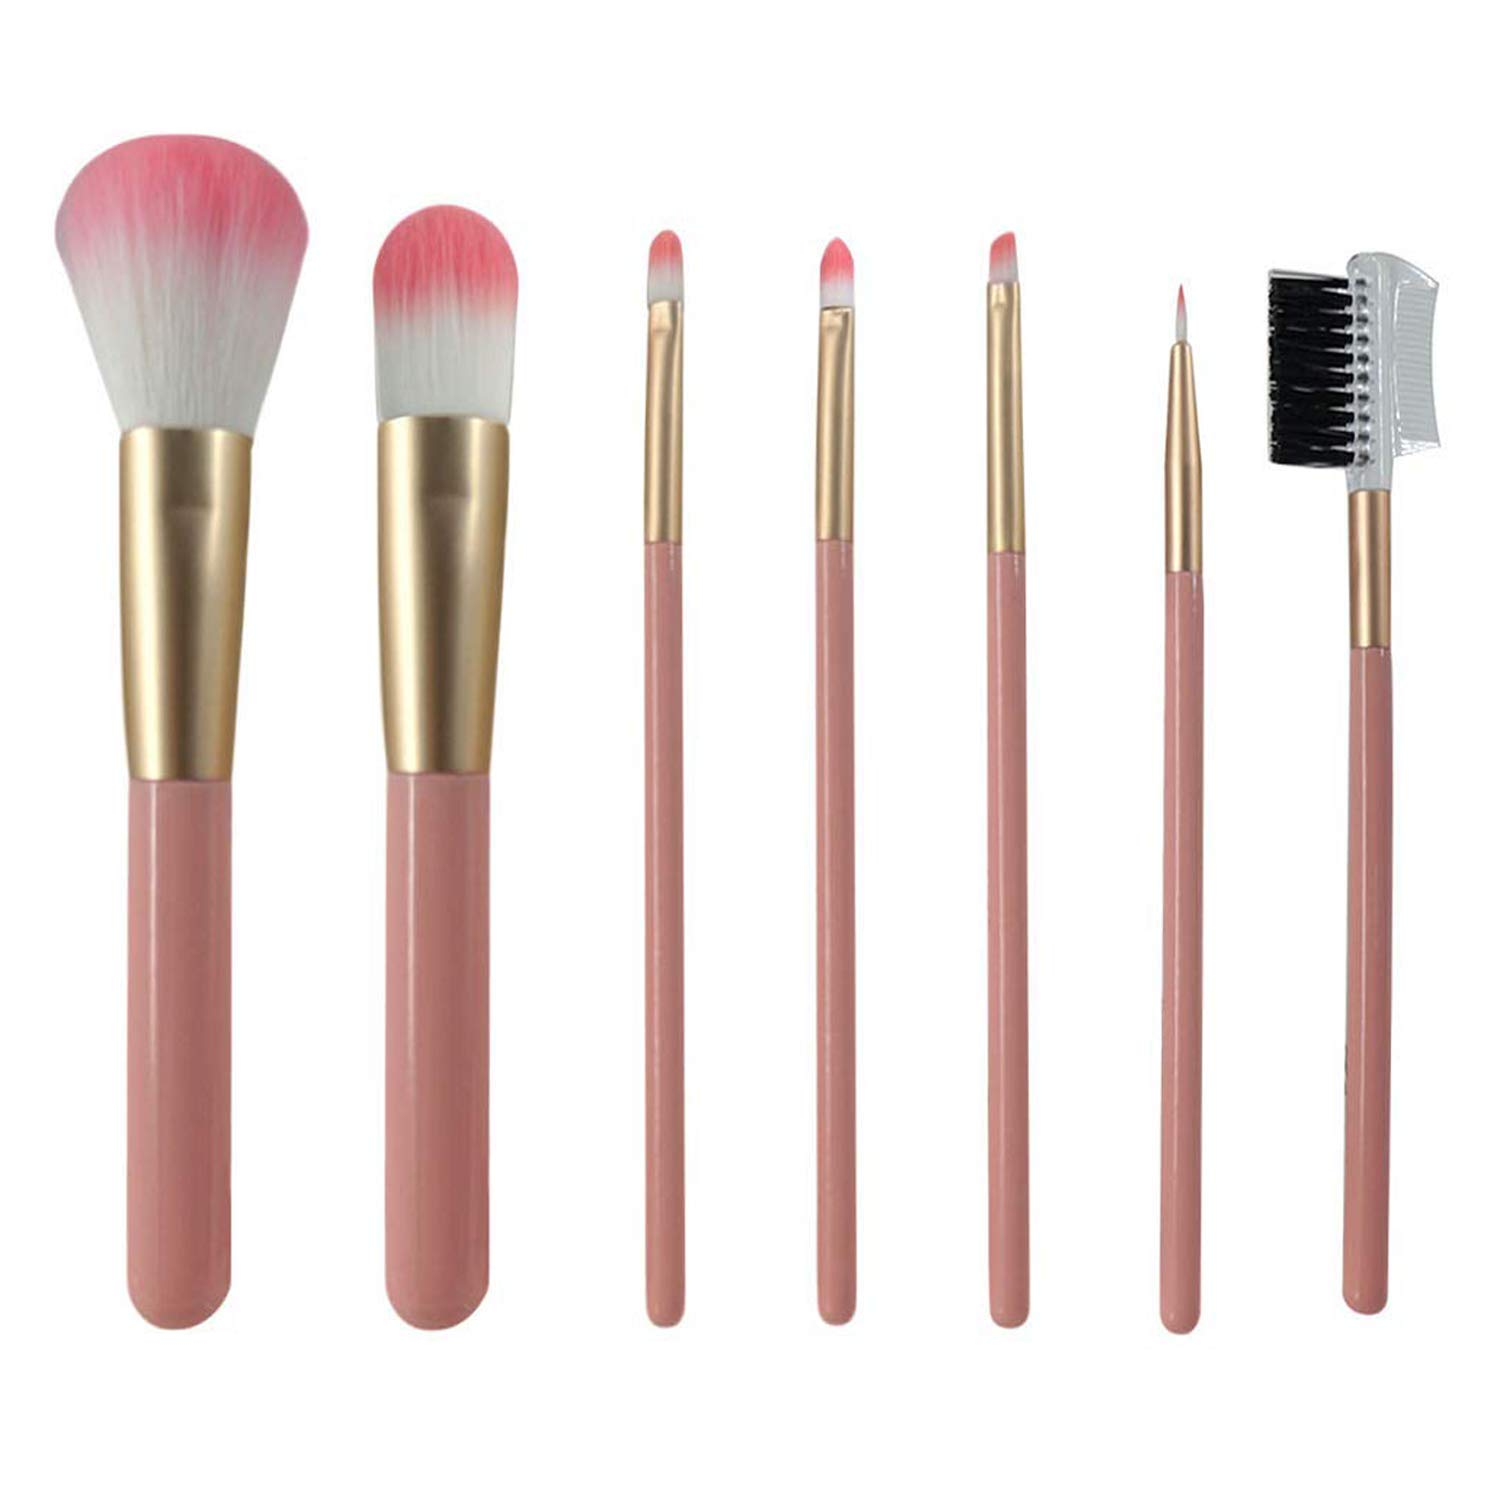 Makeup Brushes Premium Synthetic Foundation Concealers Eye Shadows Small Powder Travel Brush Pink